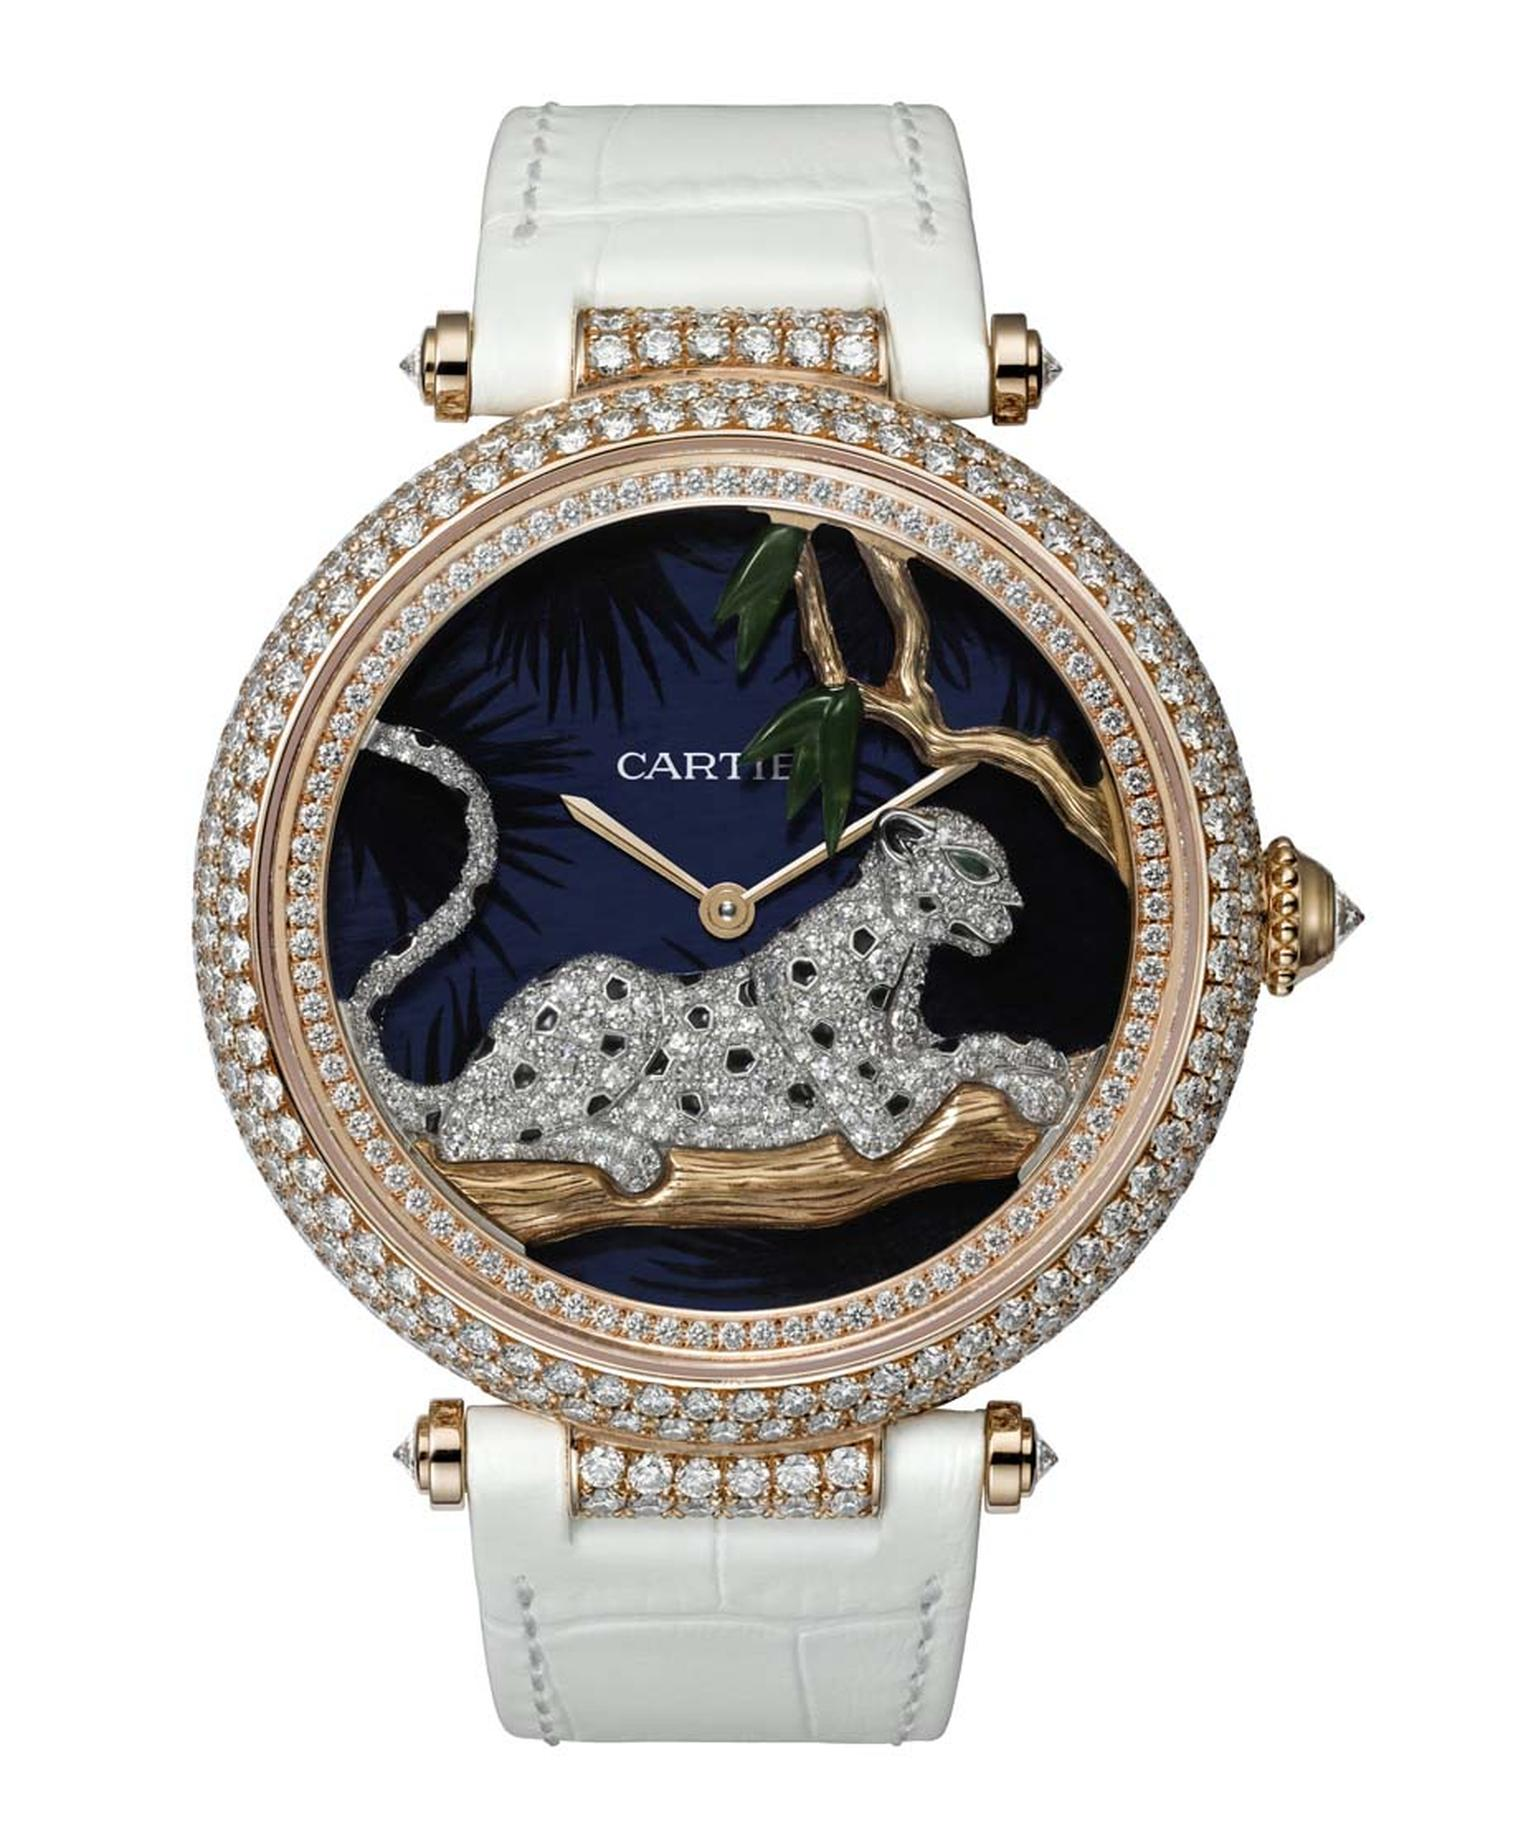 Cartier's Panthère au Claire de Lune watch, decorated with 395 brilliant-cut diamonds, is equipped with a movement that allows the big cat to sway gently back and forth across the dial in time with the rotor.